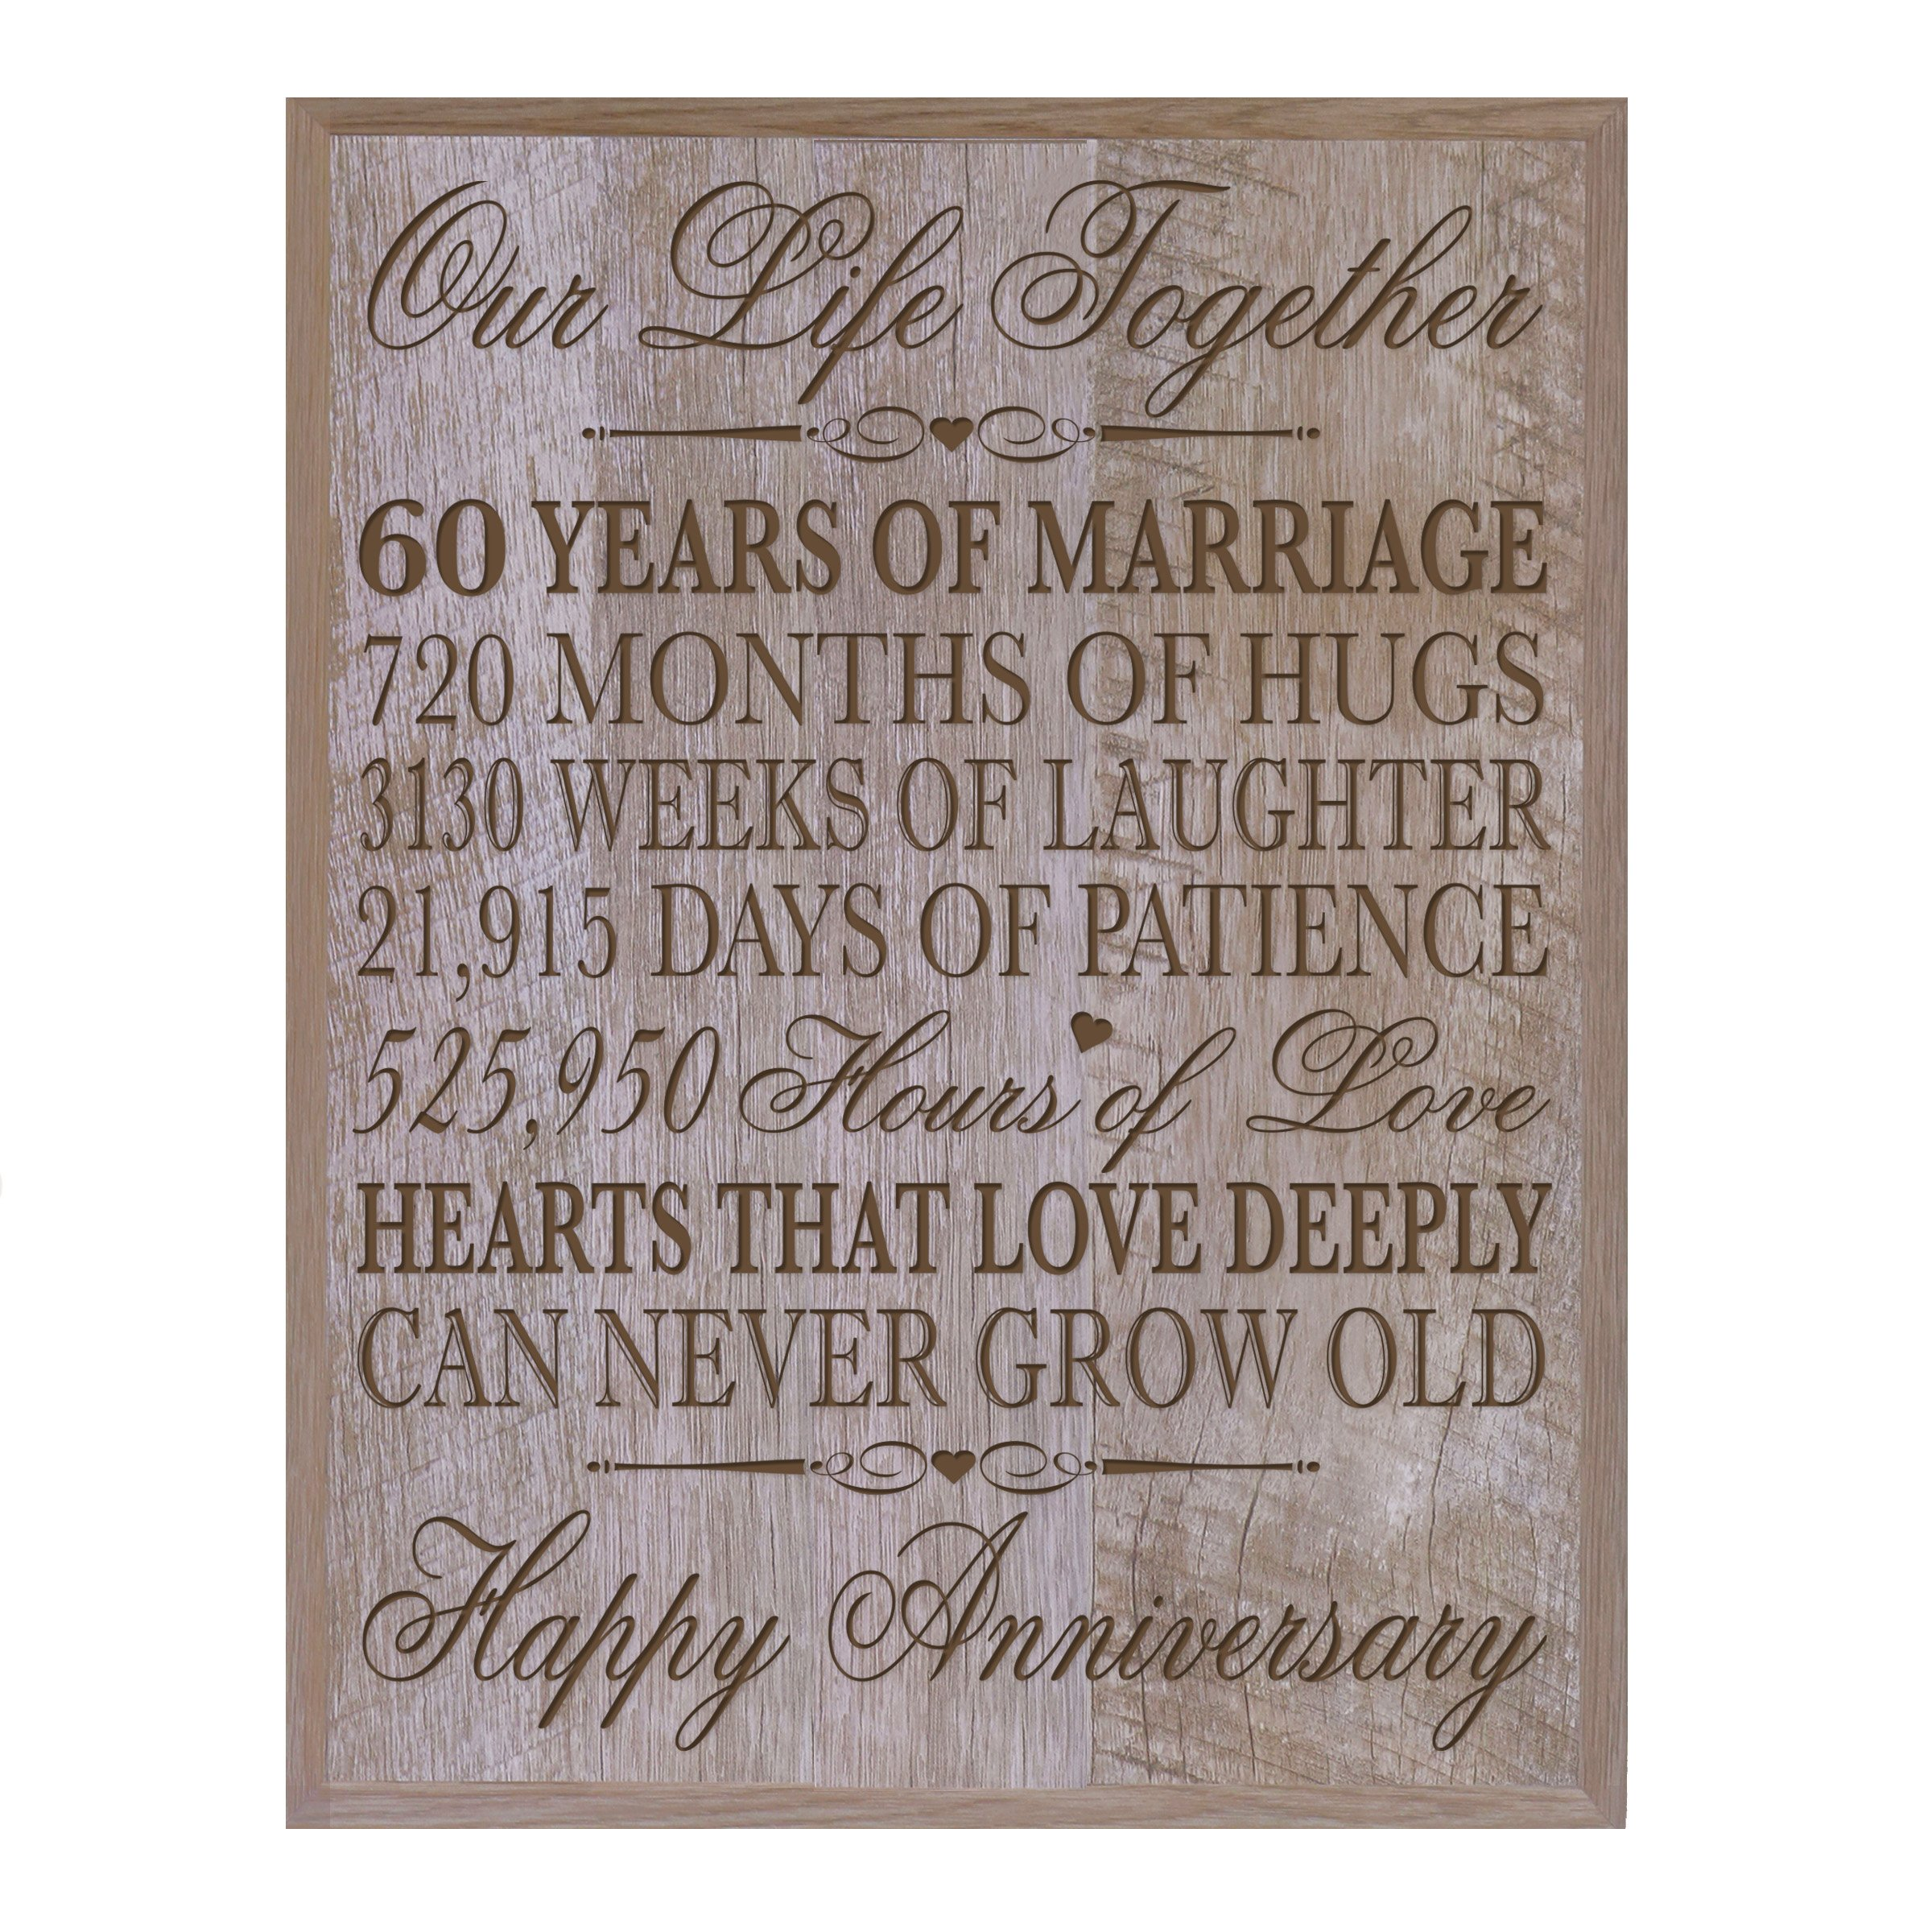 Gifts For 60th Wedding Anniversary: Best Happy 60th Wedding Anniversary Images